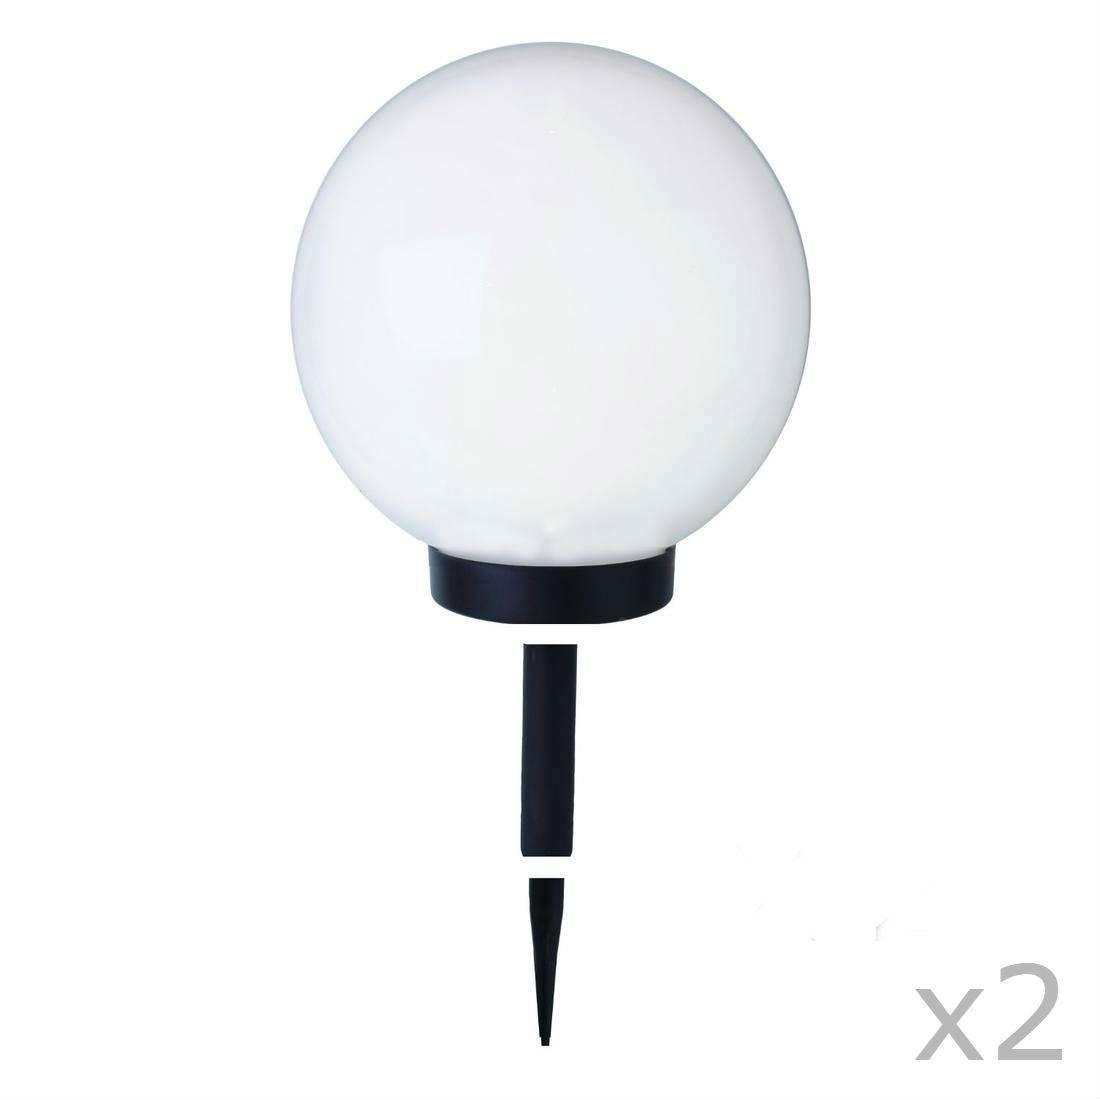 globe light lampe de jardin blanc polypropylene. Black Bedroom Furniture Sets. Home Design Ideas